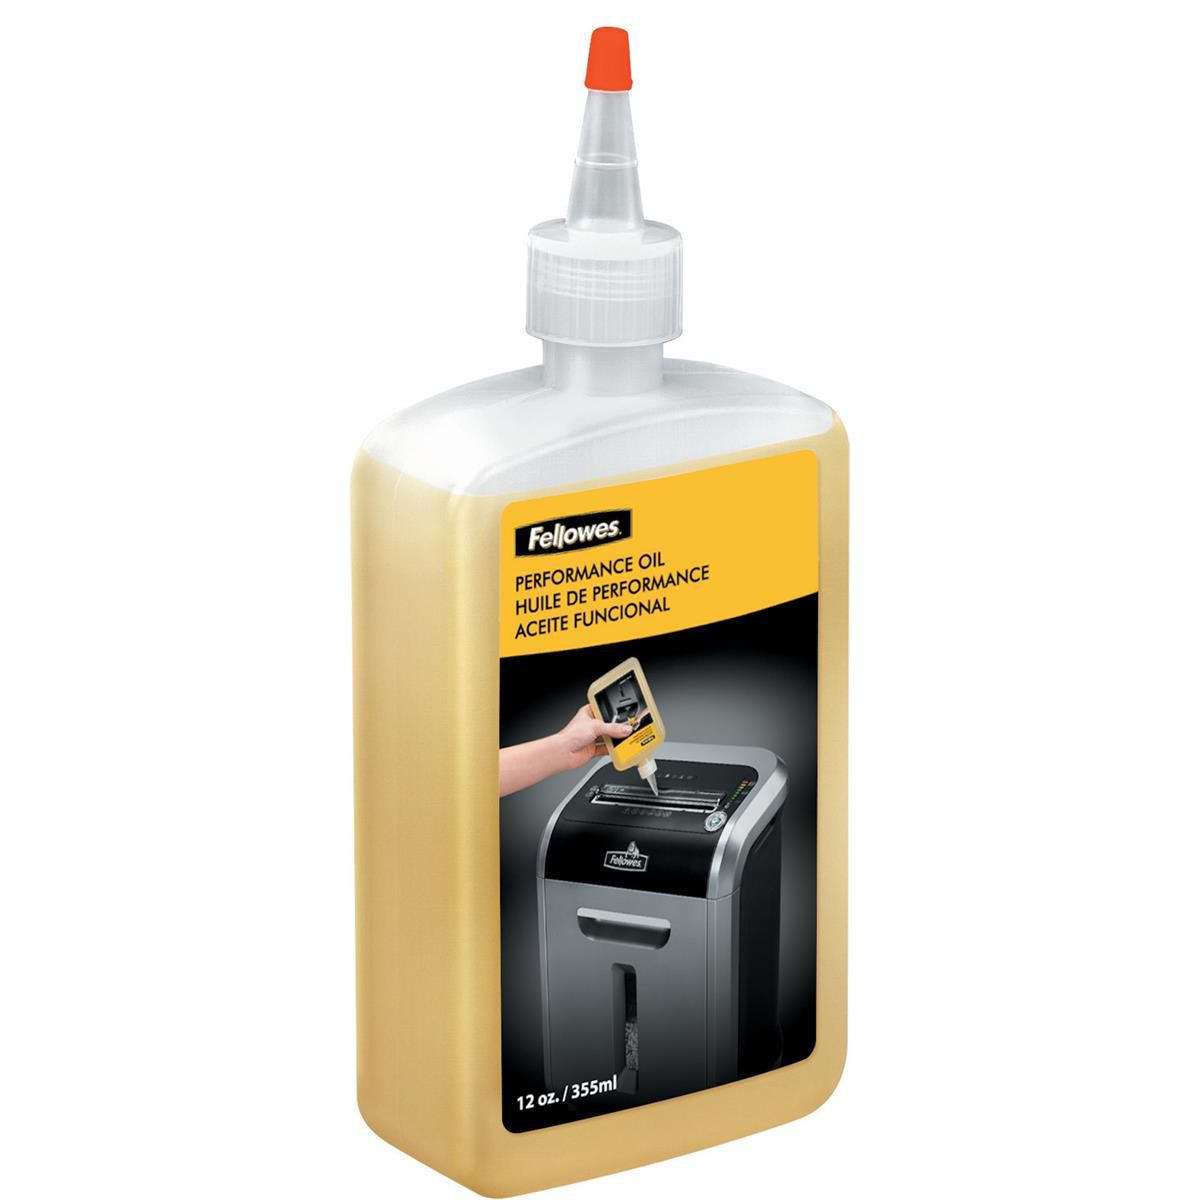 Oil Fellowes Shredder Oil for all Cross-cut Shredders Bottle 355ml Ref 35250